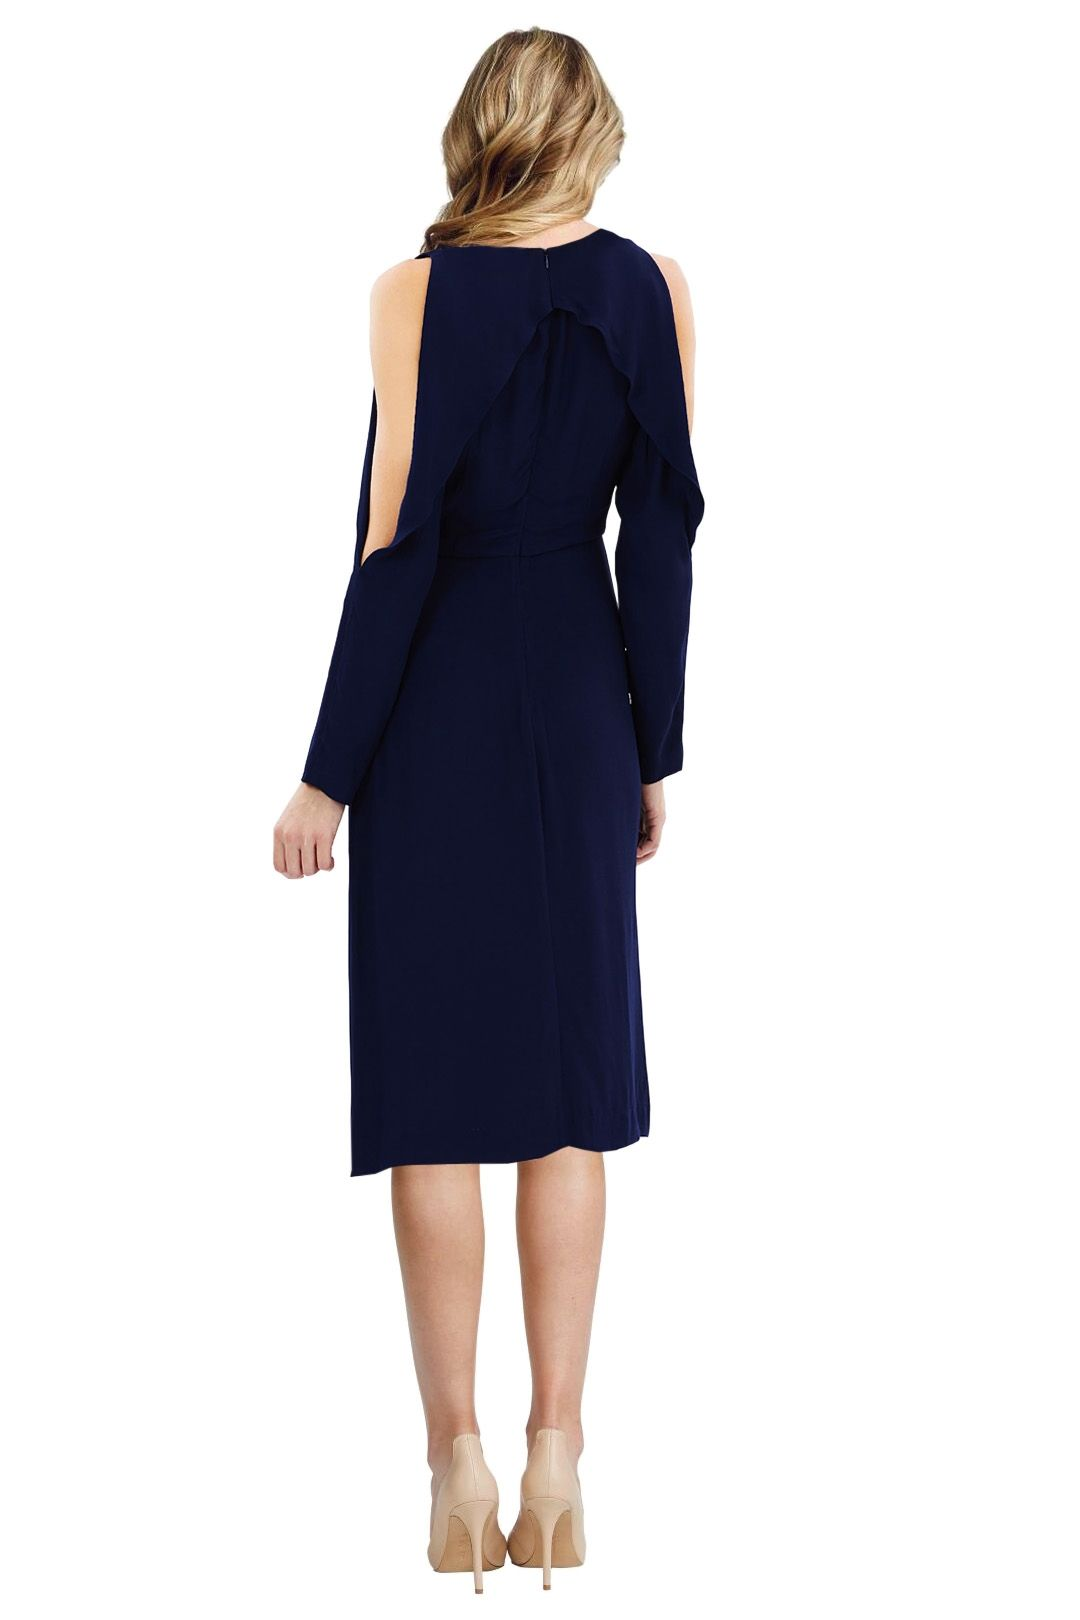 C/MEO Collective - Do It Now Dress - Blue - Back